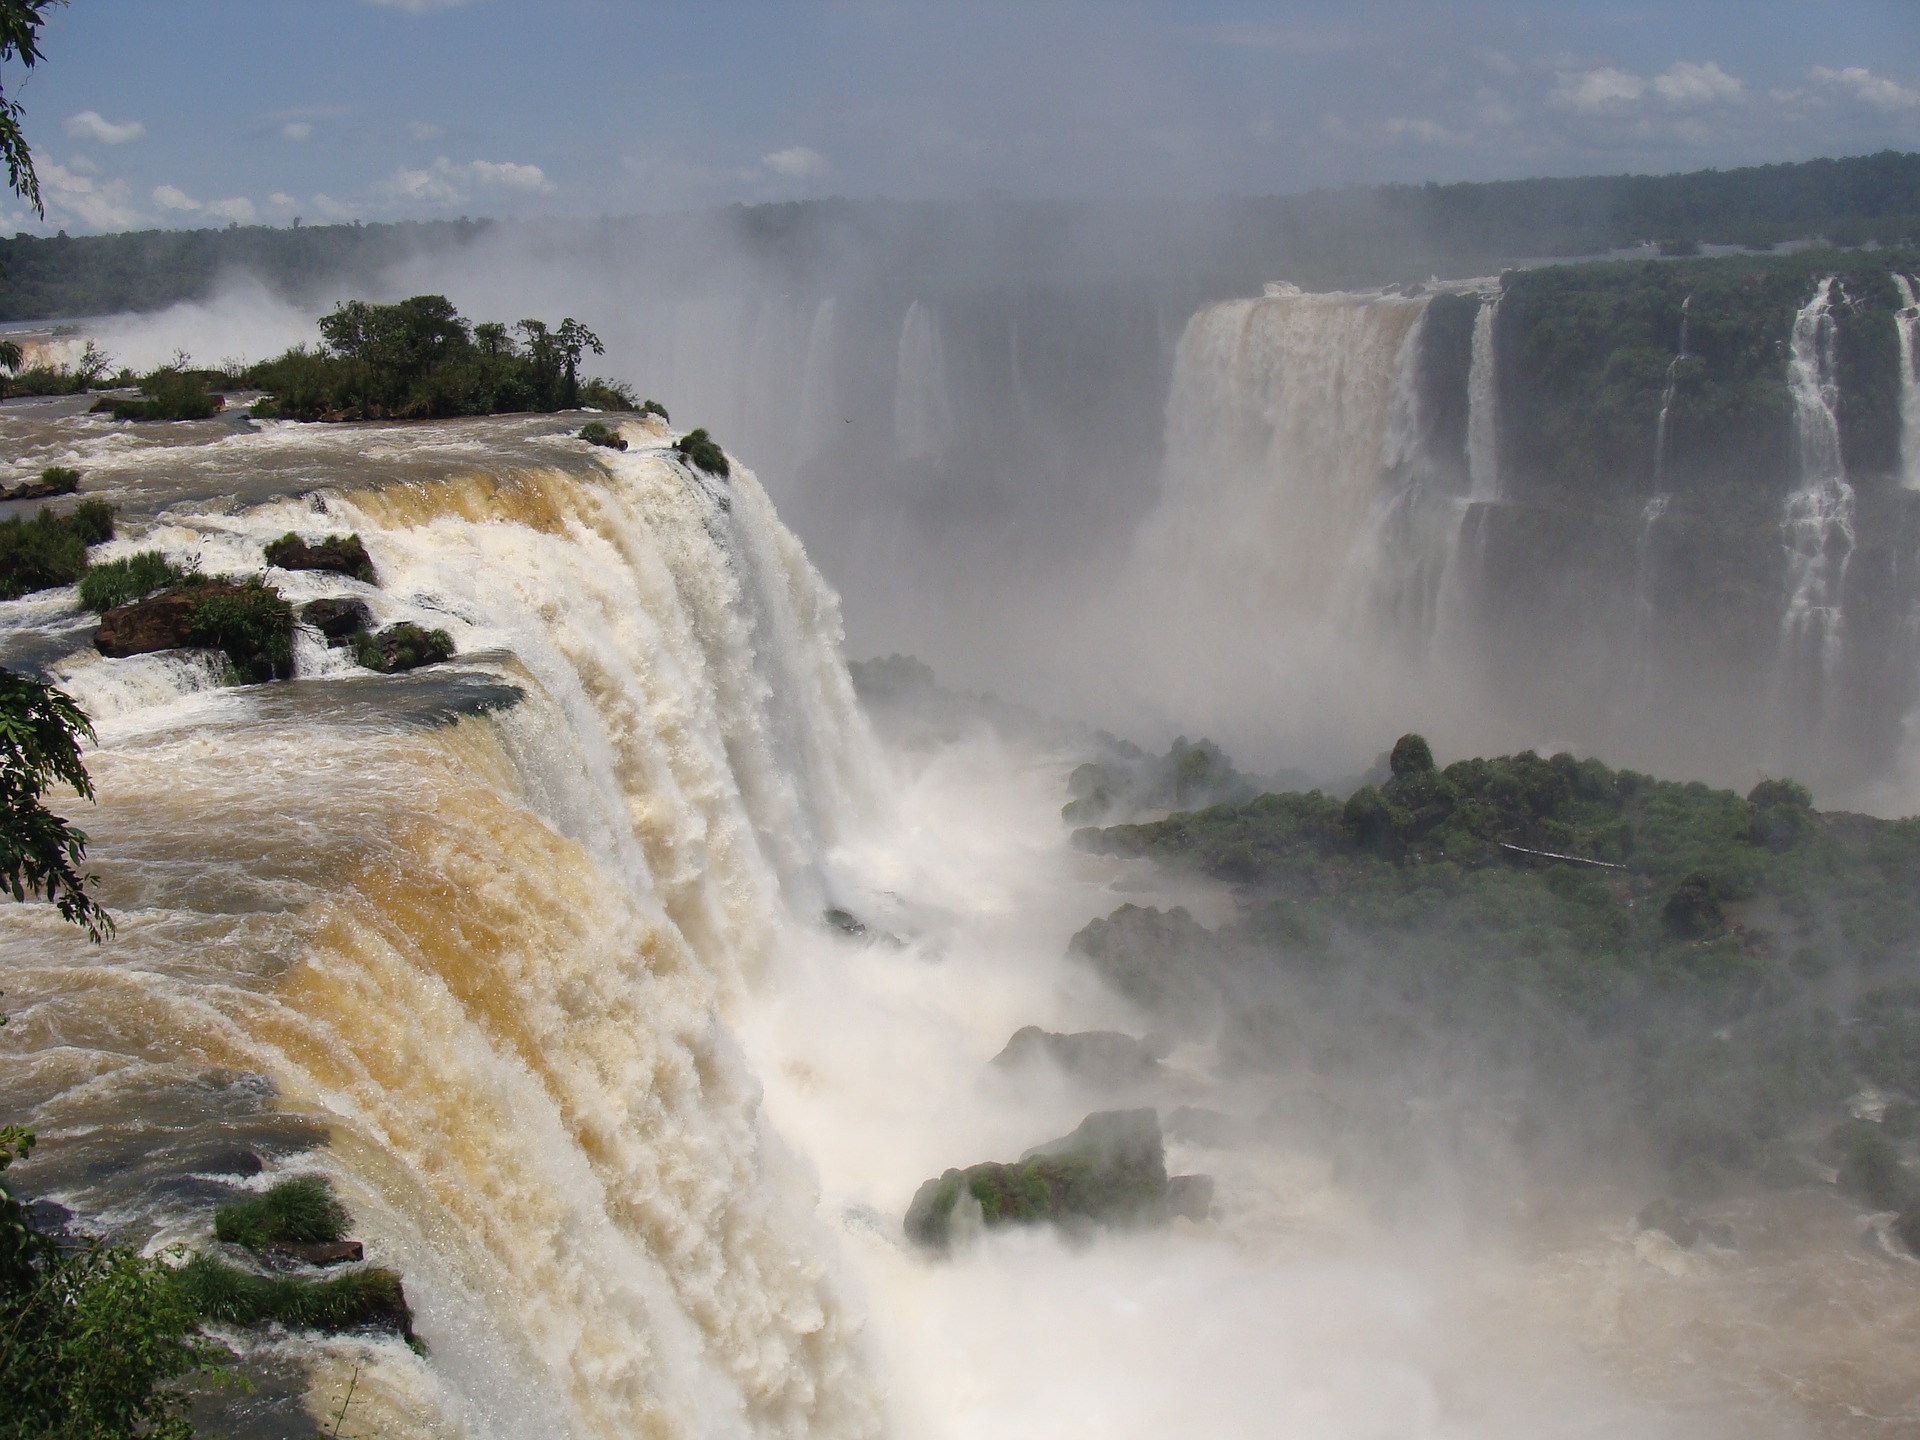 The famous devil's throat at the Iguassu falls.